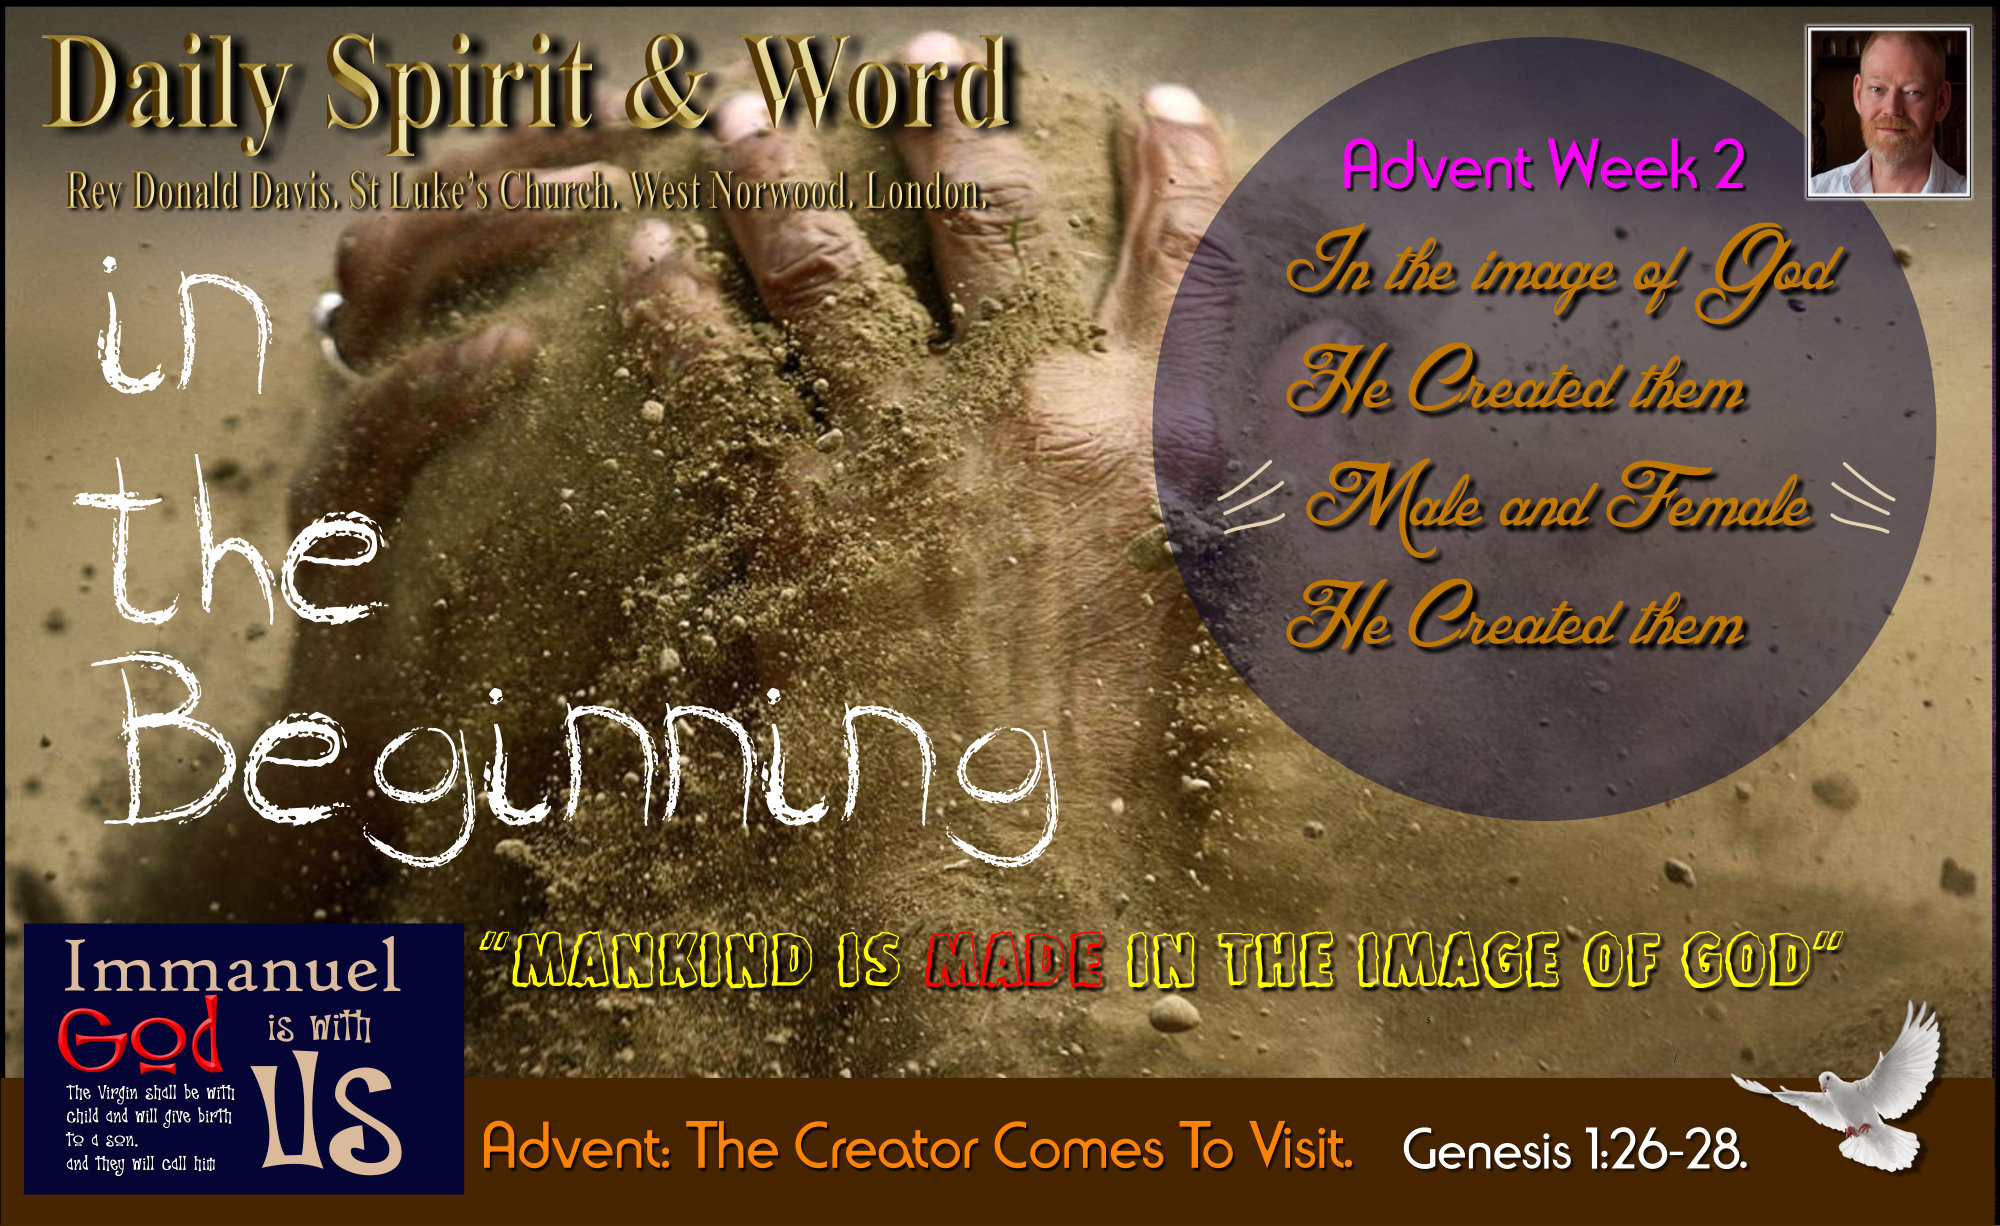 Human Beings are made, created by God